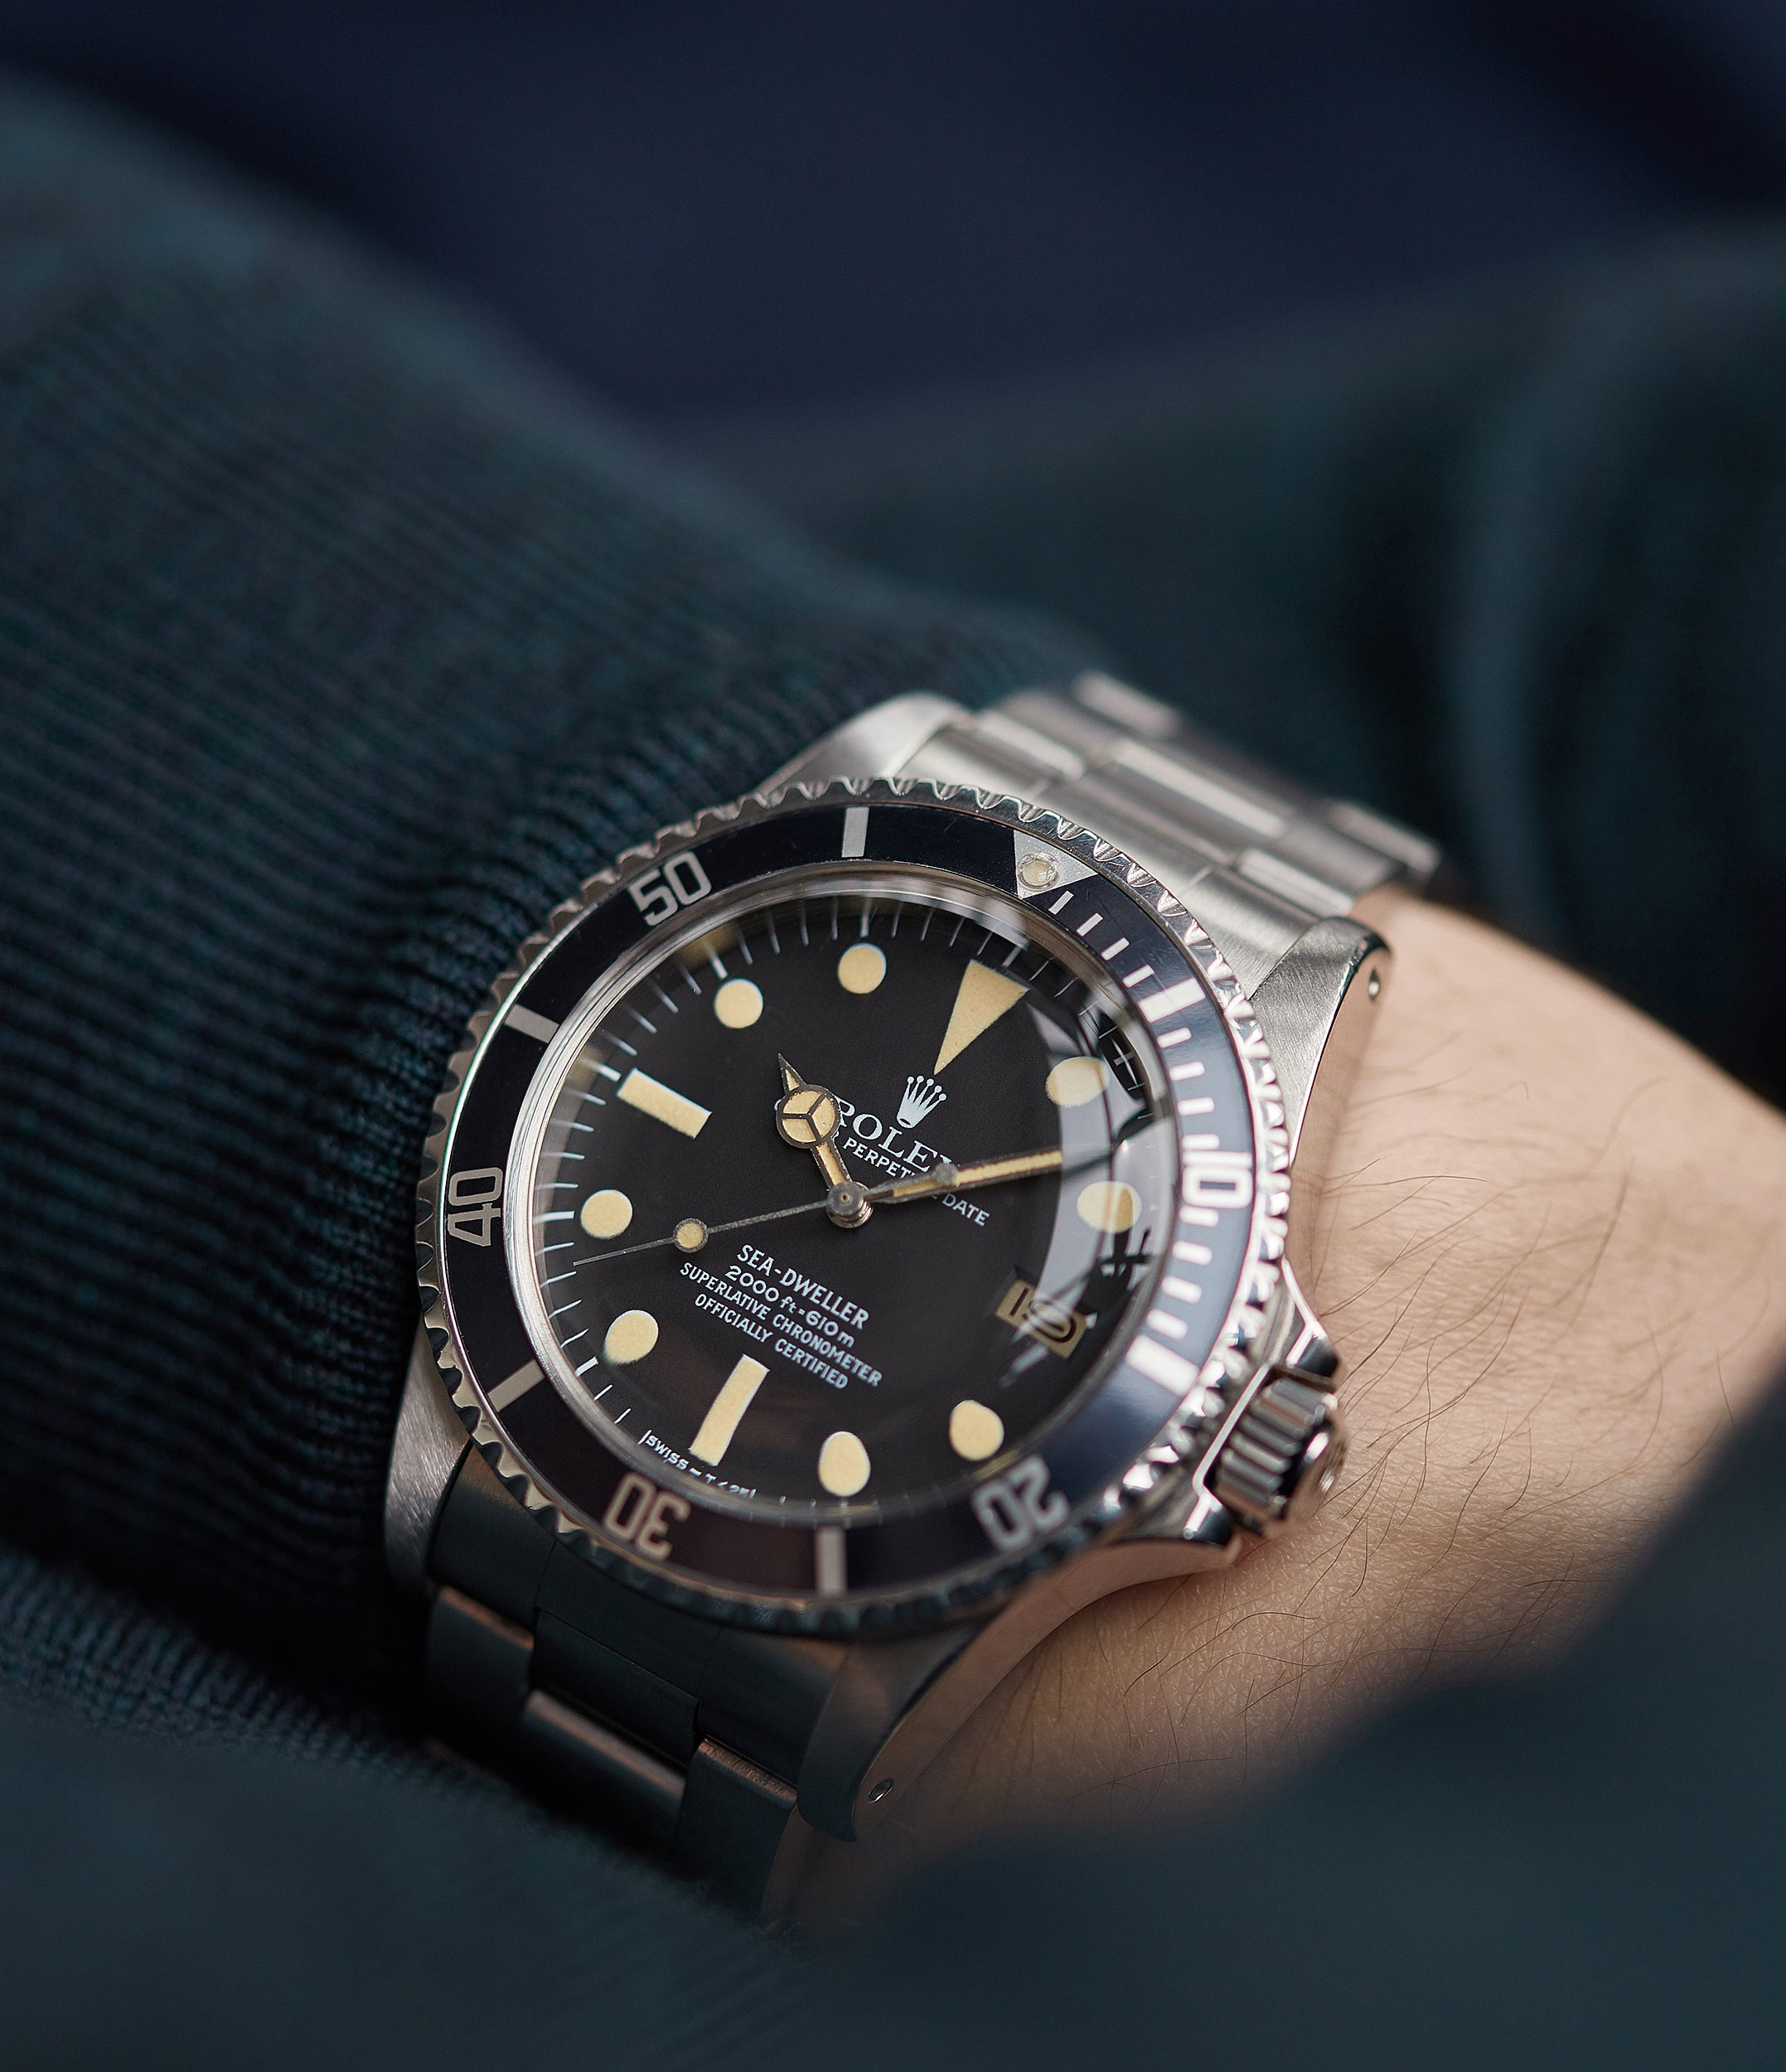 selling Rolex Sea-Dweller Great White 1665 caliber 1570